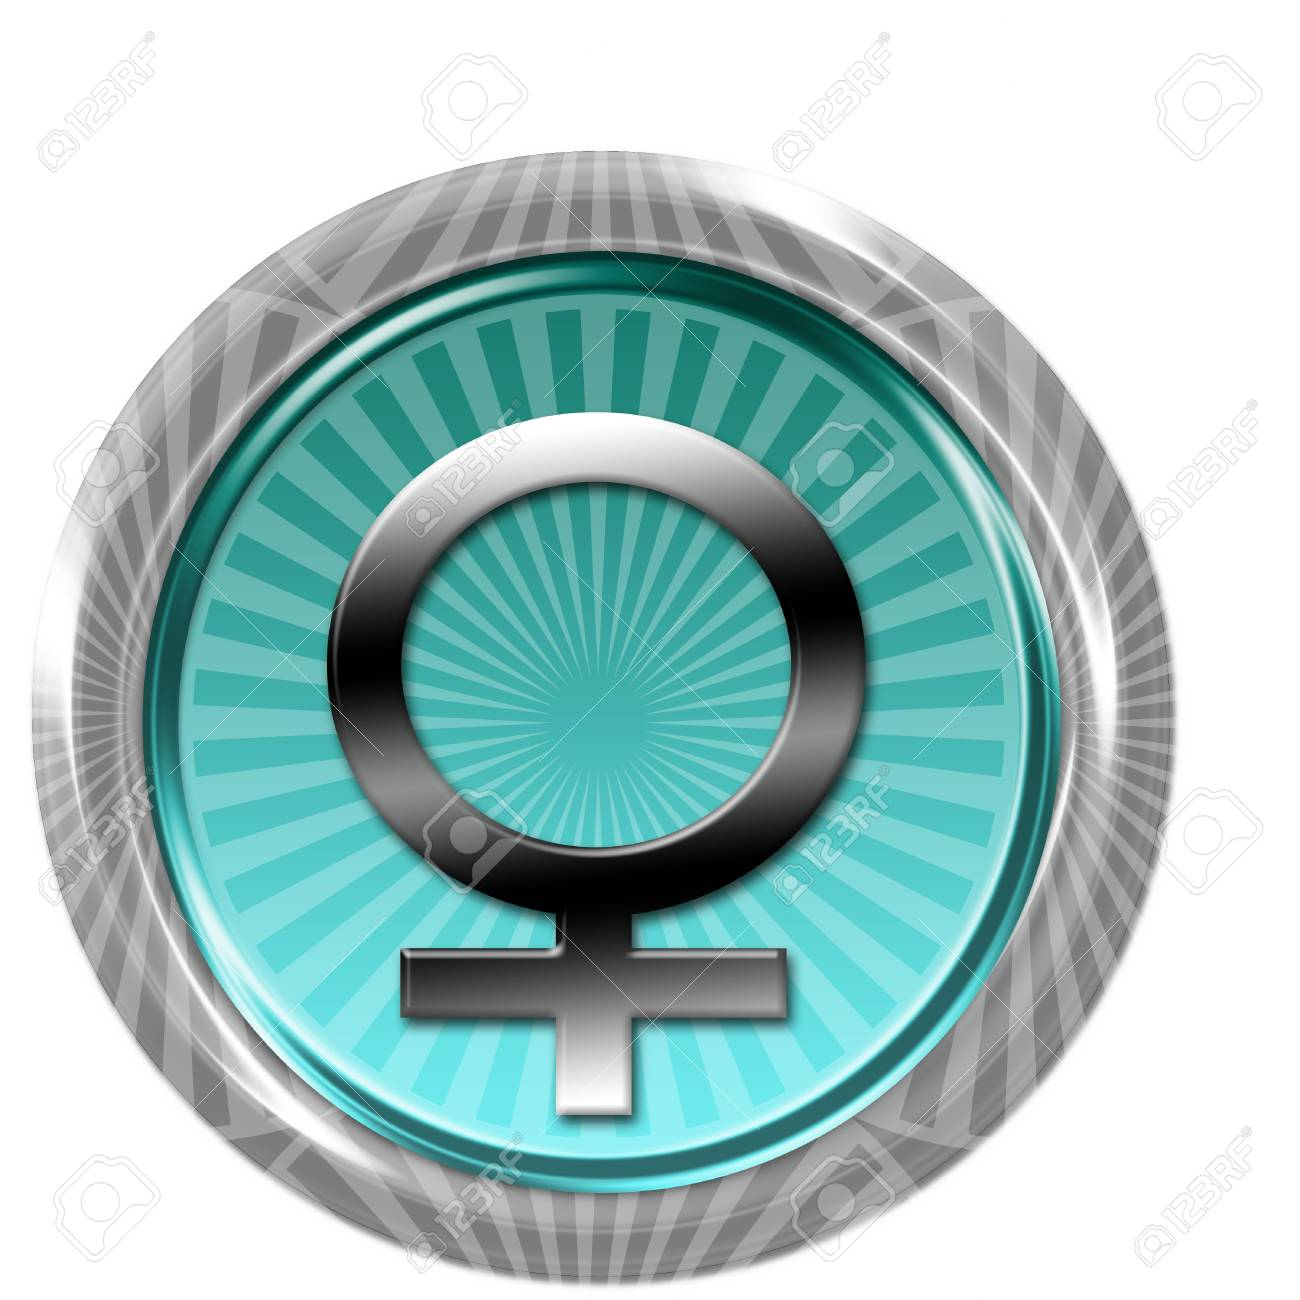 Button with female sign Stock Photo - 6595318